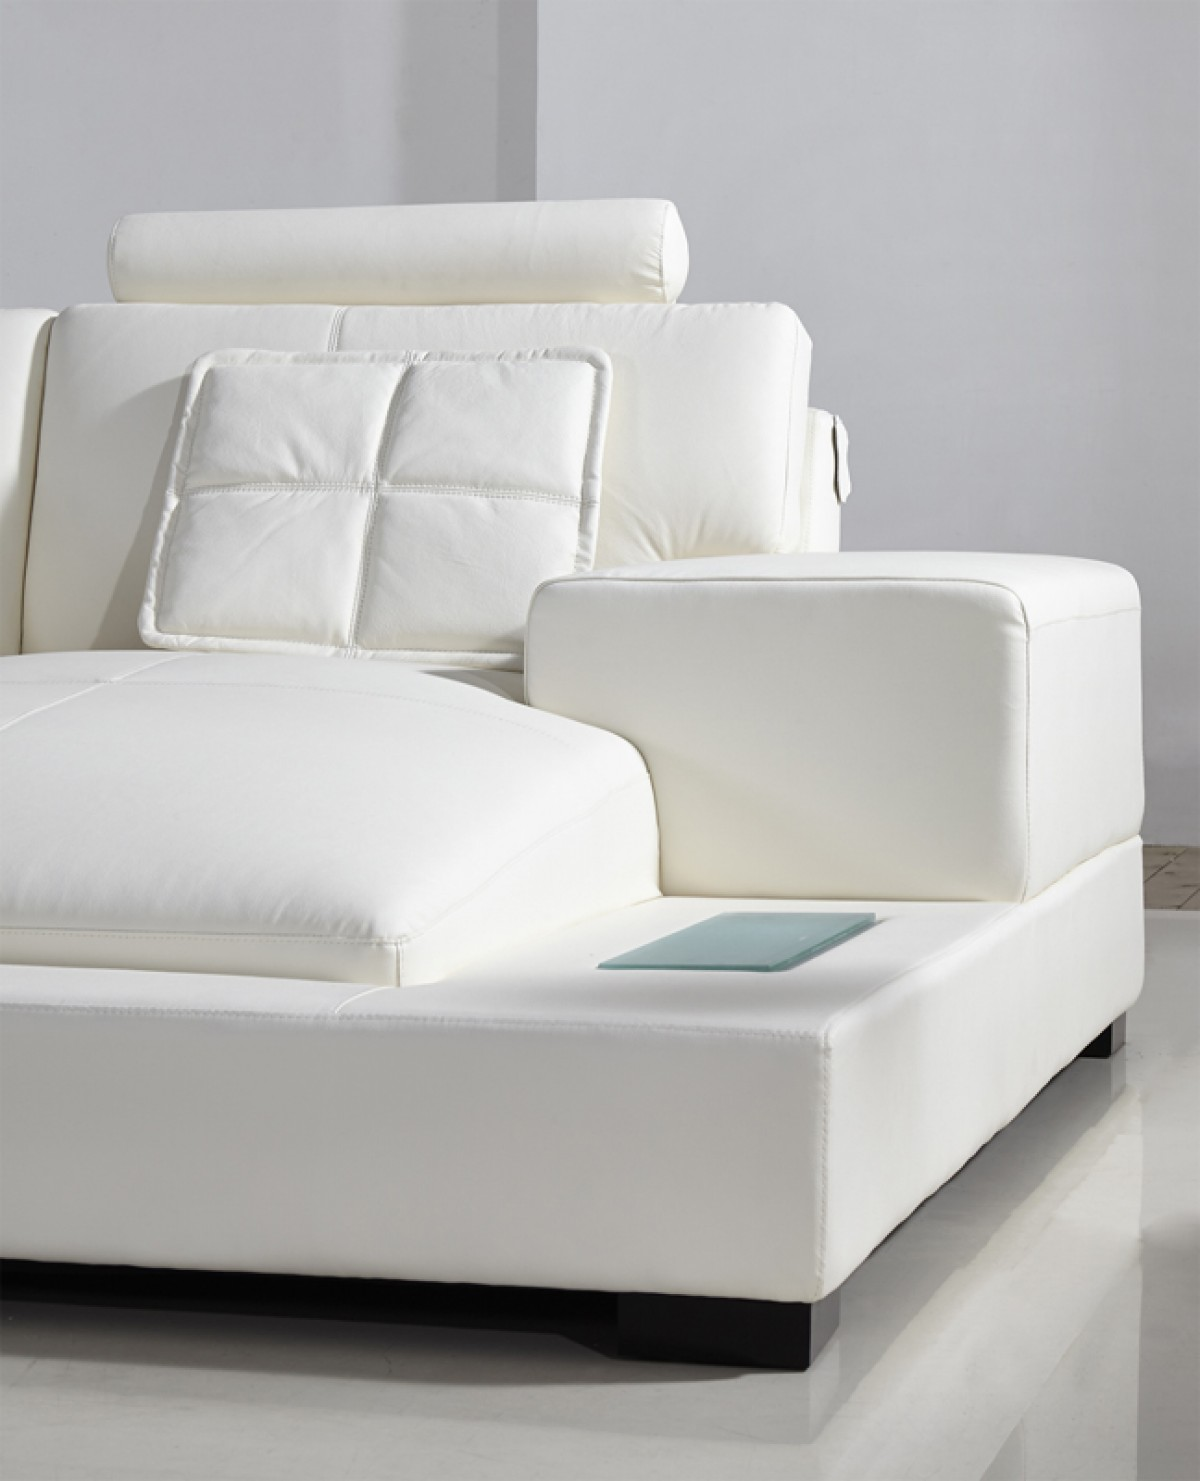 Modern White Leather Sectional Sofa: Divani Casa Diamond Modern White Bonded Leather Sectional Sofa